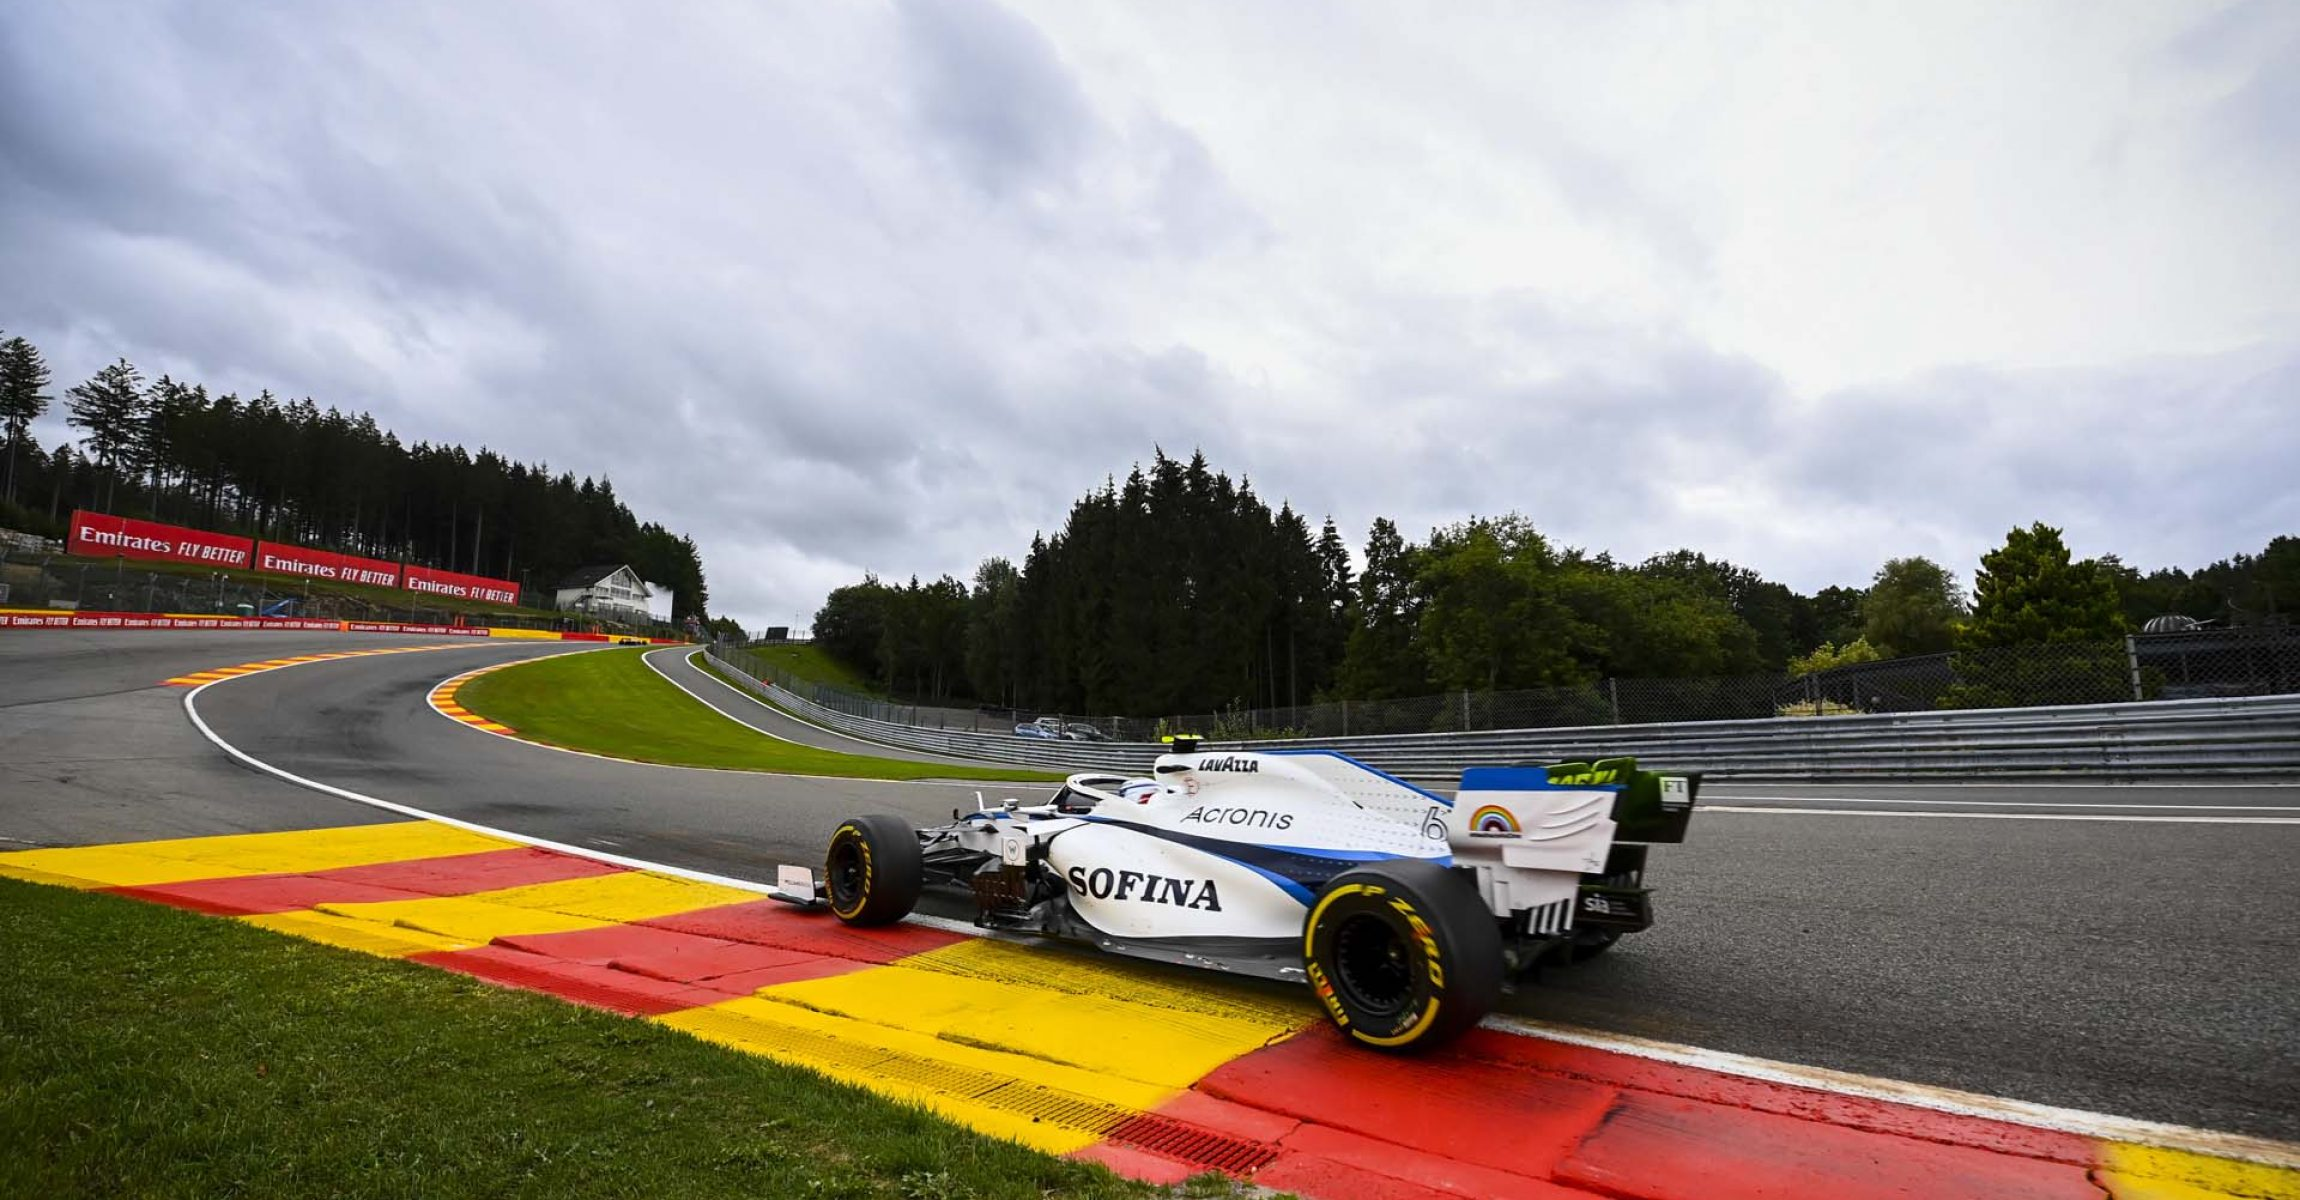 SPA-FRANCORCHAMPS, BELGIUM - AUGUST 28: Nicholas Latifi, Williams FW43 during the Belgian GP at Spa-Francorchamps on Friday August 28, 2020 in Spa, Belgium. (Photo by Mark Sutton / LAT Images)